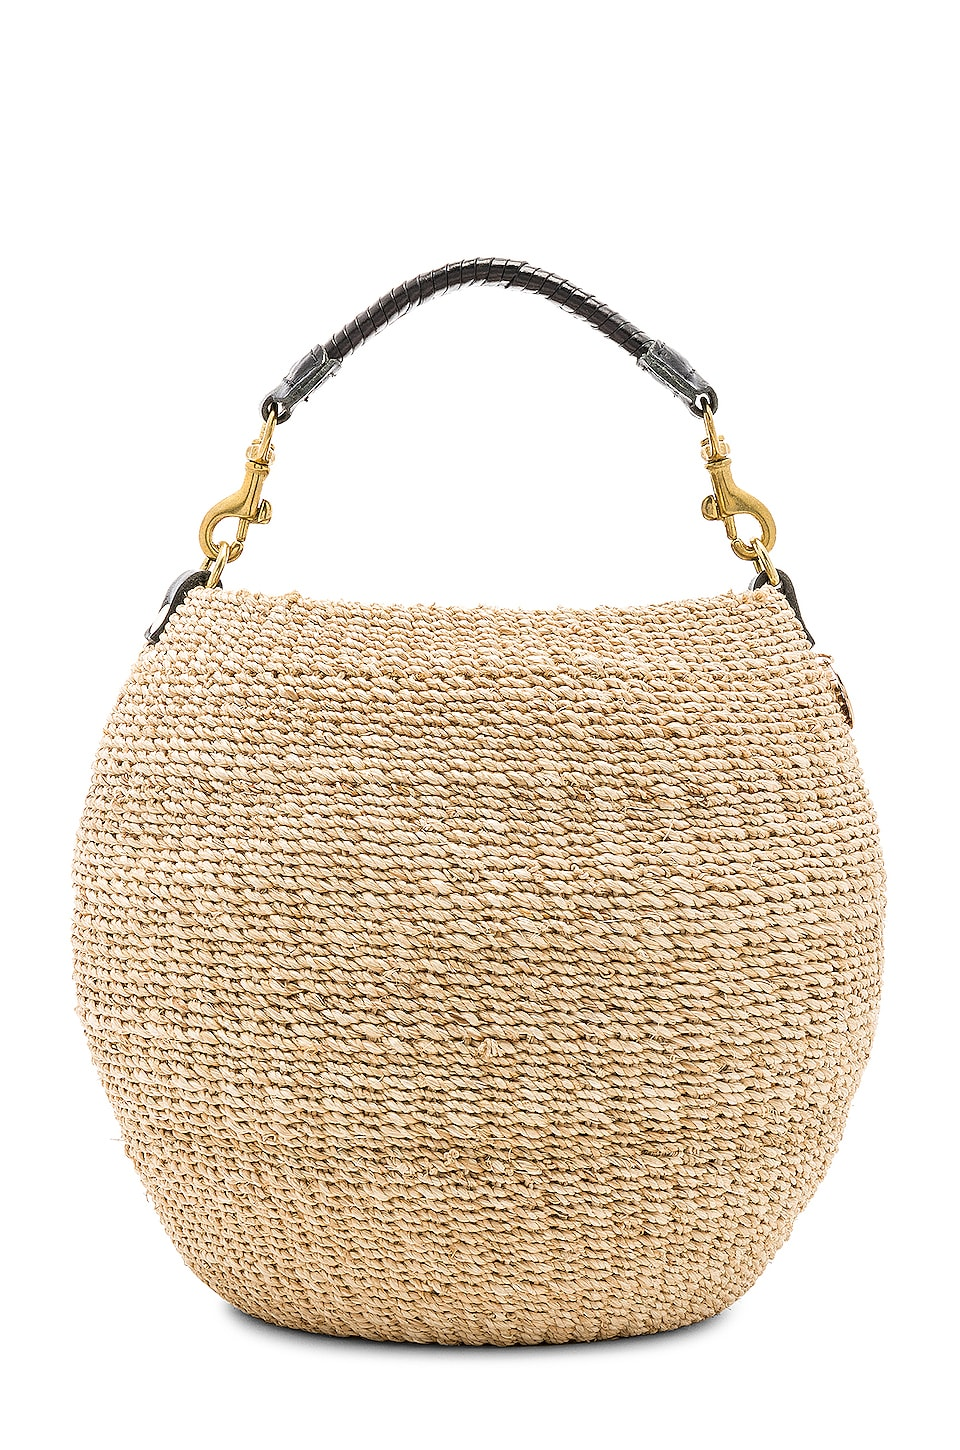 Clare V. Pot De Miel Tote in Cream Woven